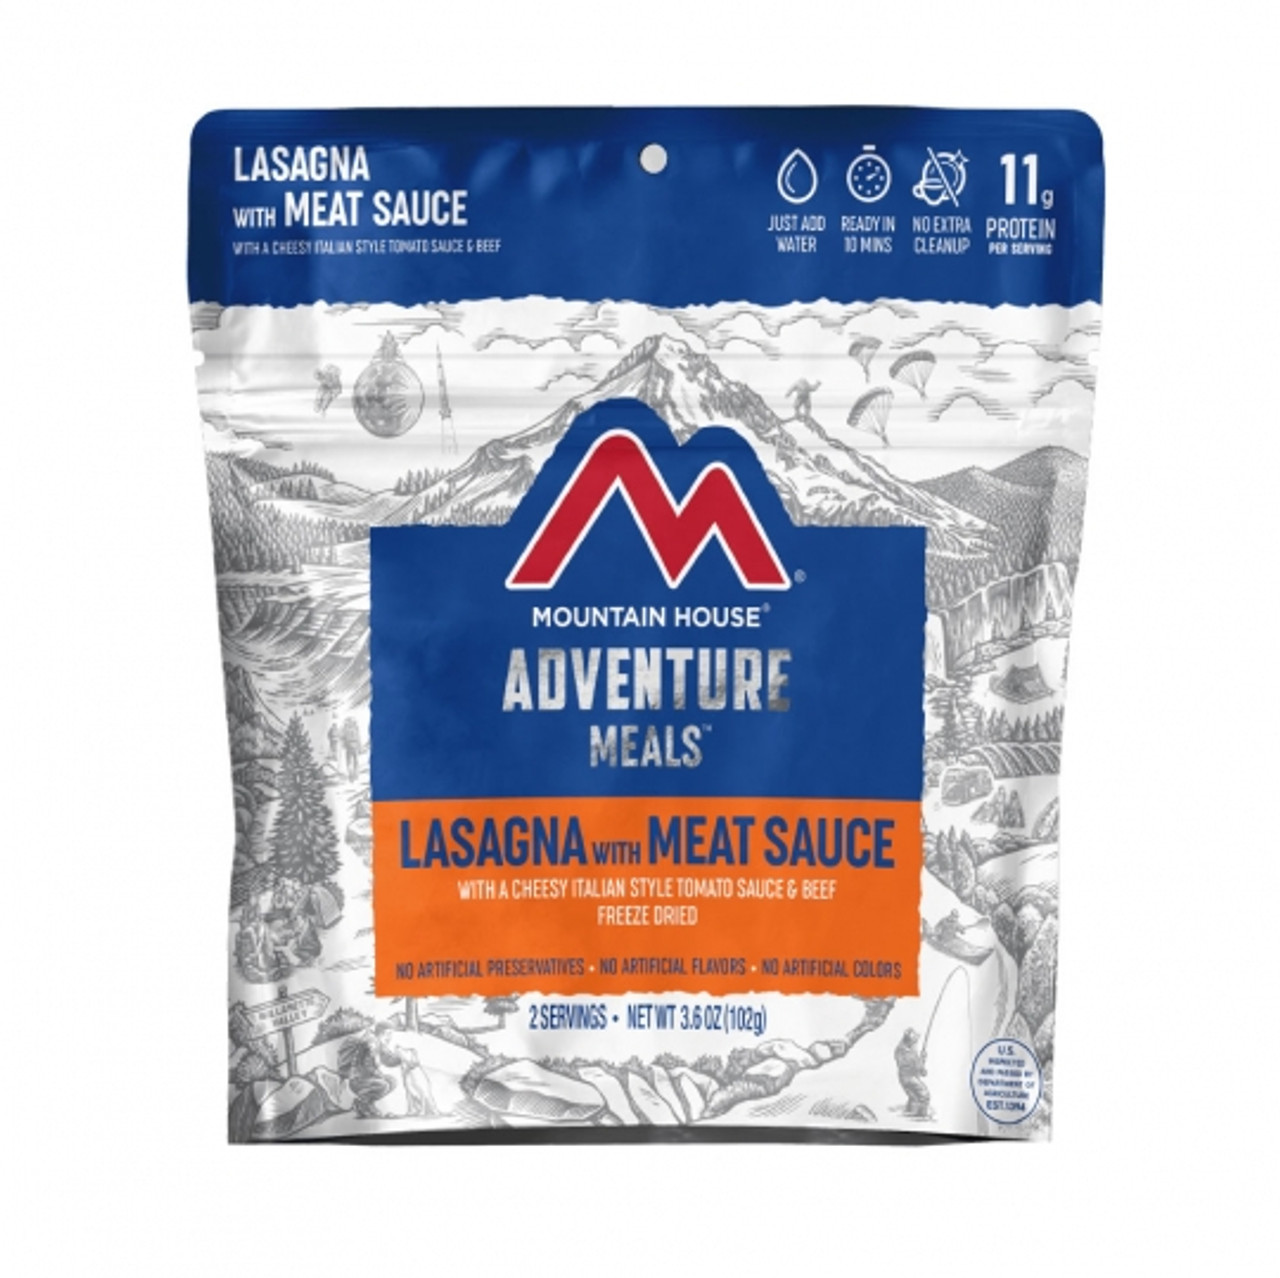 Mountain House Lasagna with Meat Sauce Pouch